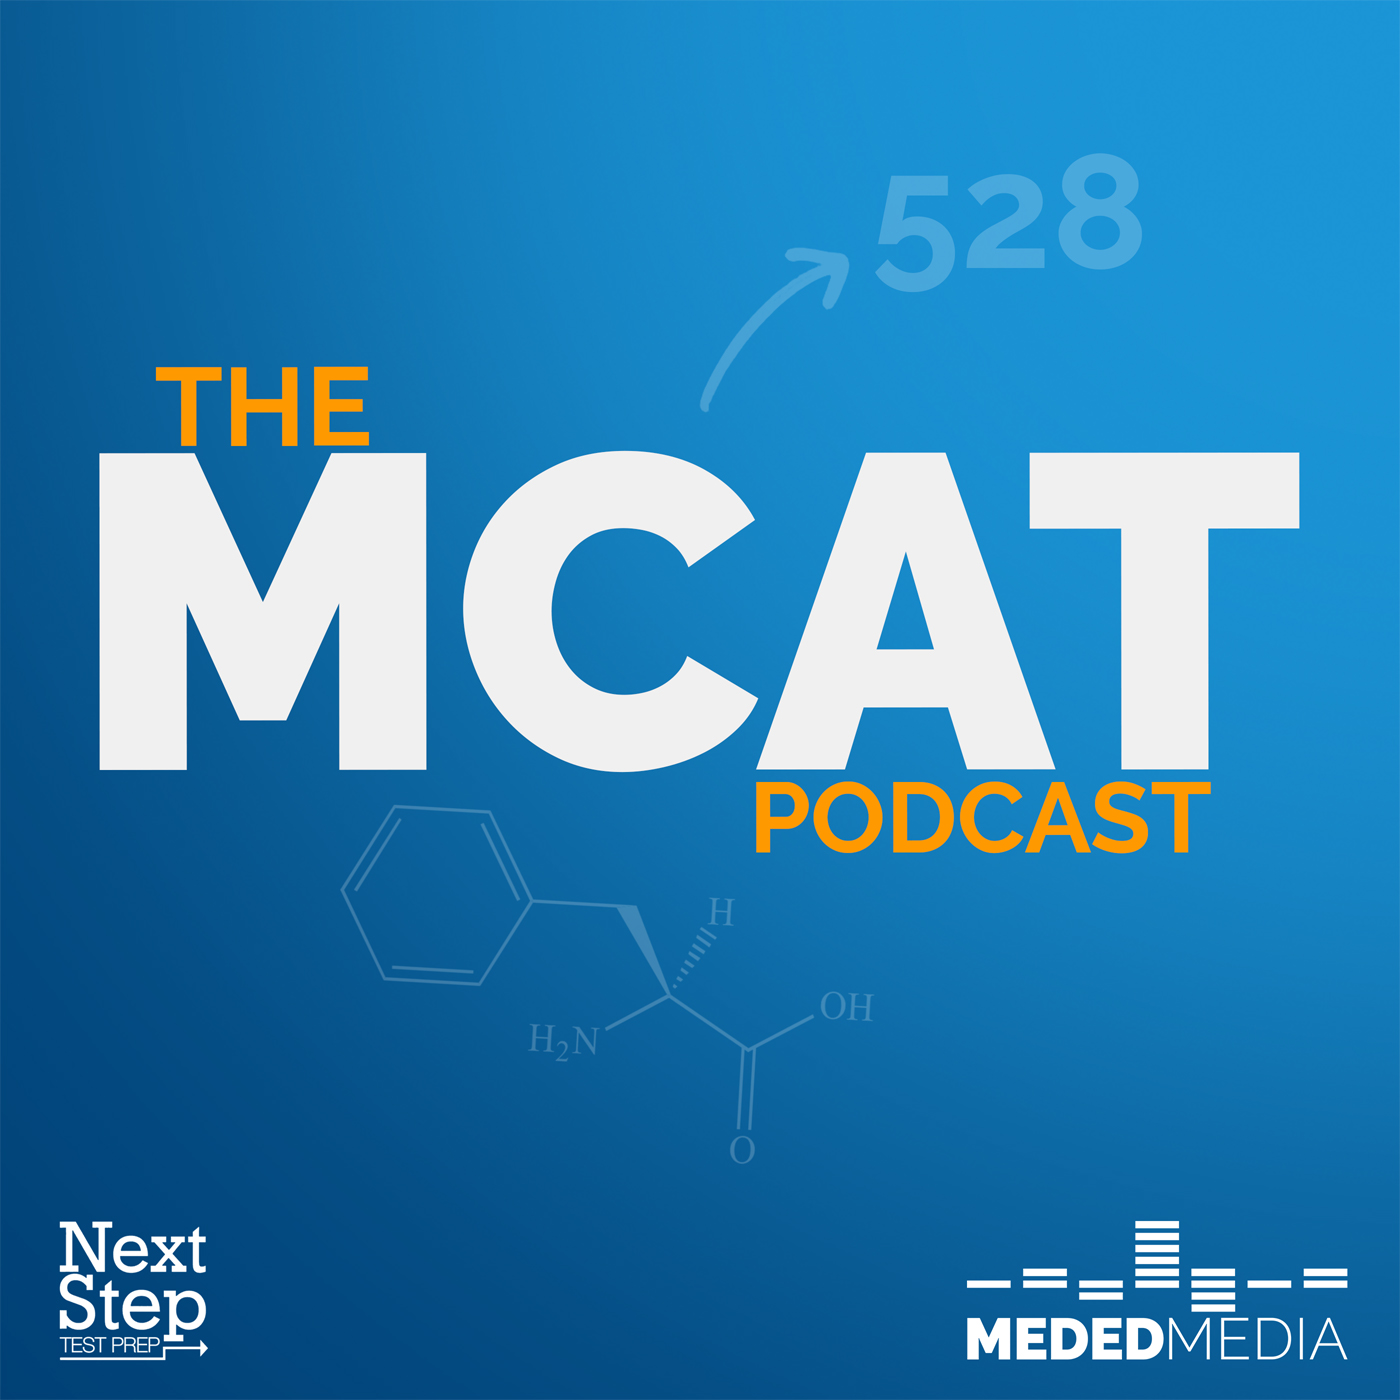 The mcat podcast from the medical school headquarters podcast fandeluxe Image collections